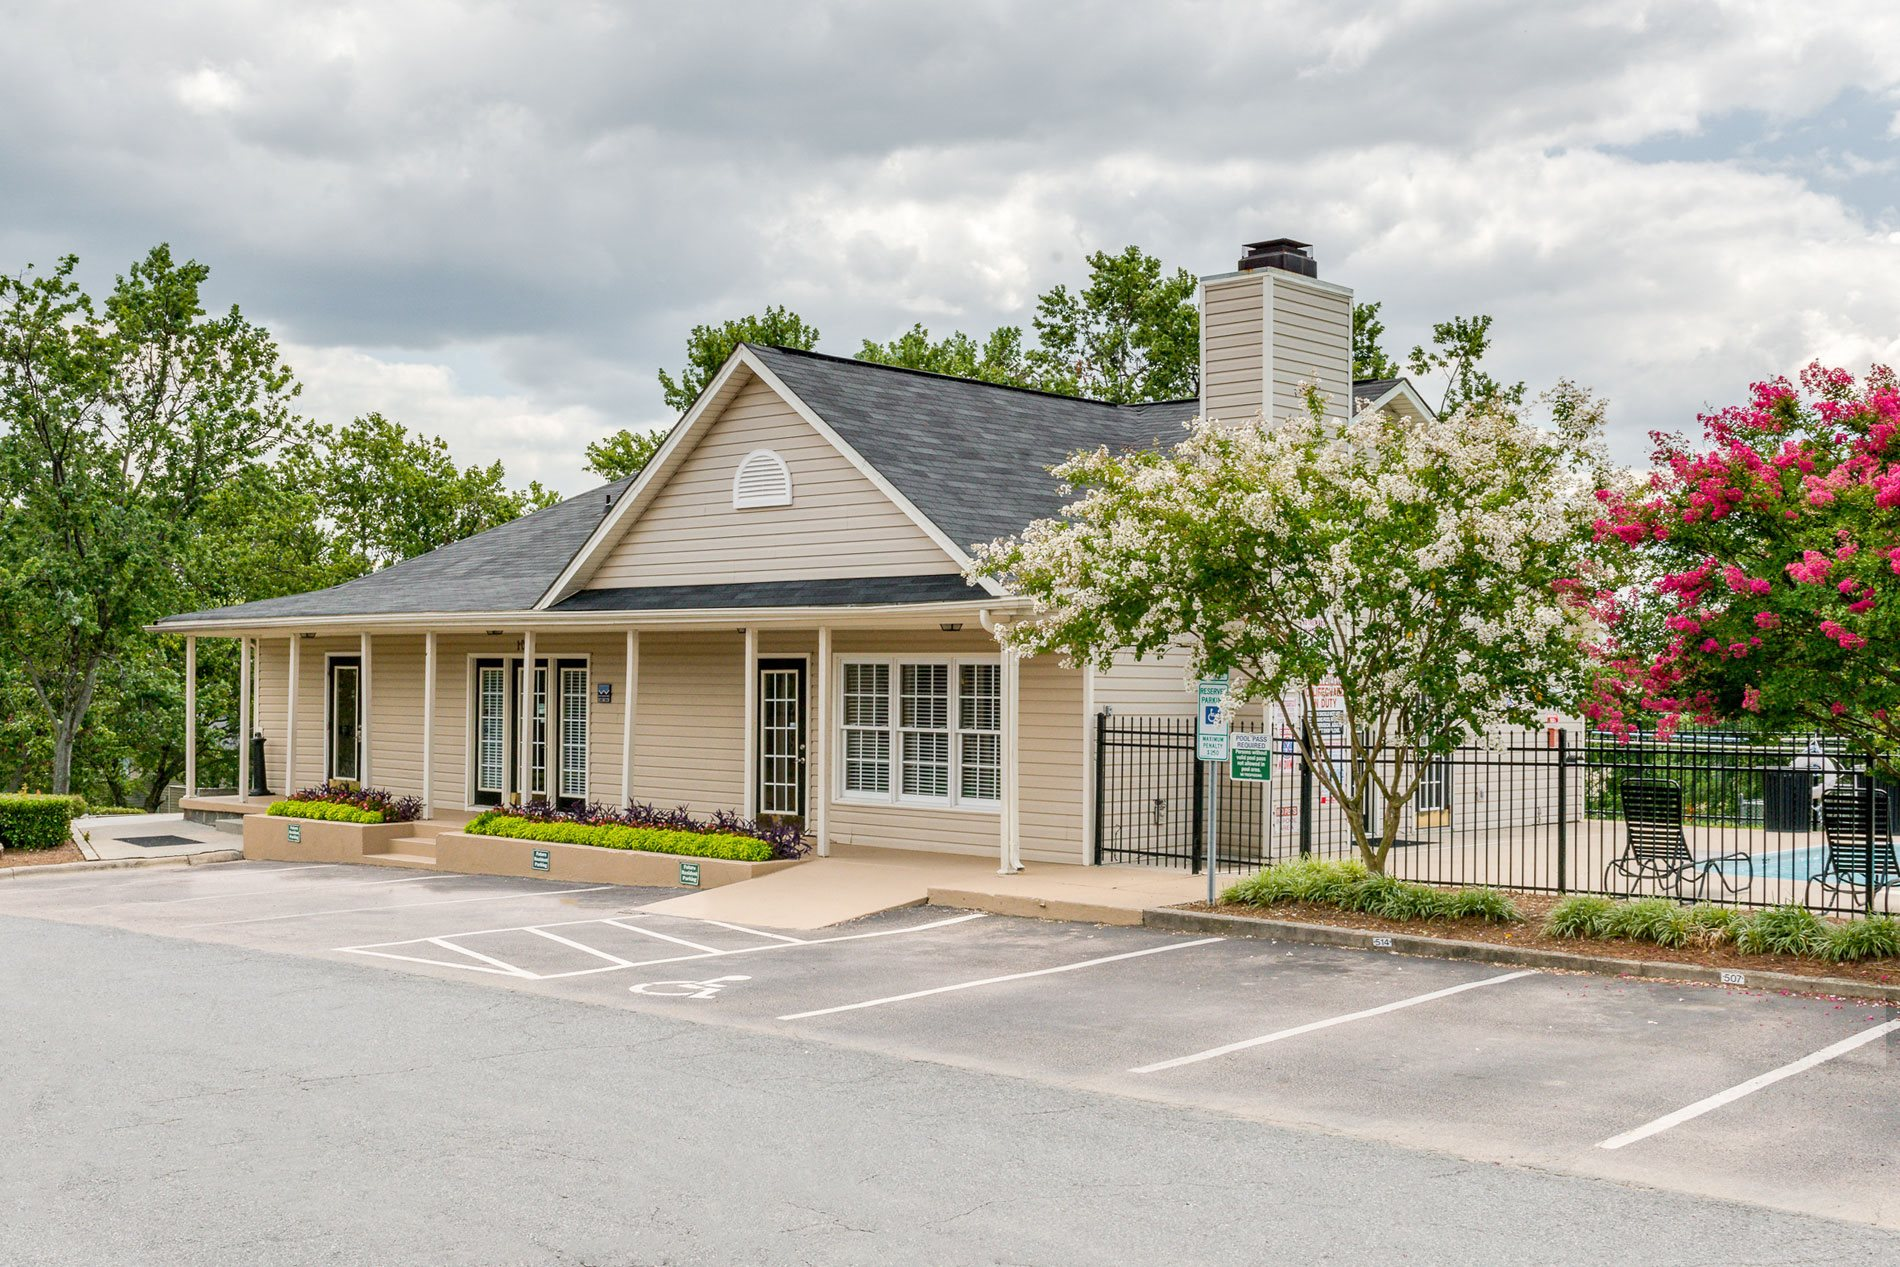 Leasing Office Exterior at Crestview and Huntington Apartment Homes in Concord, North Carolina, NC